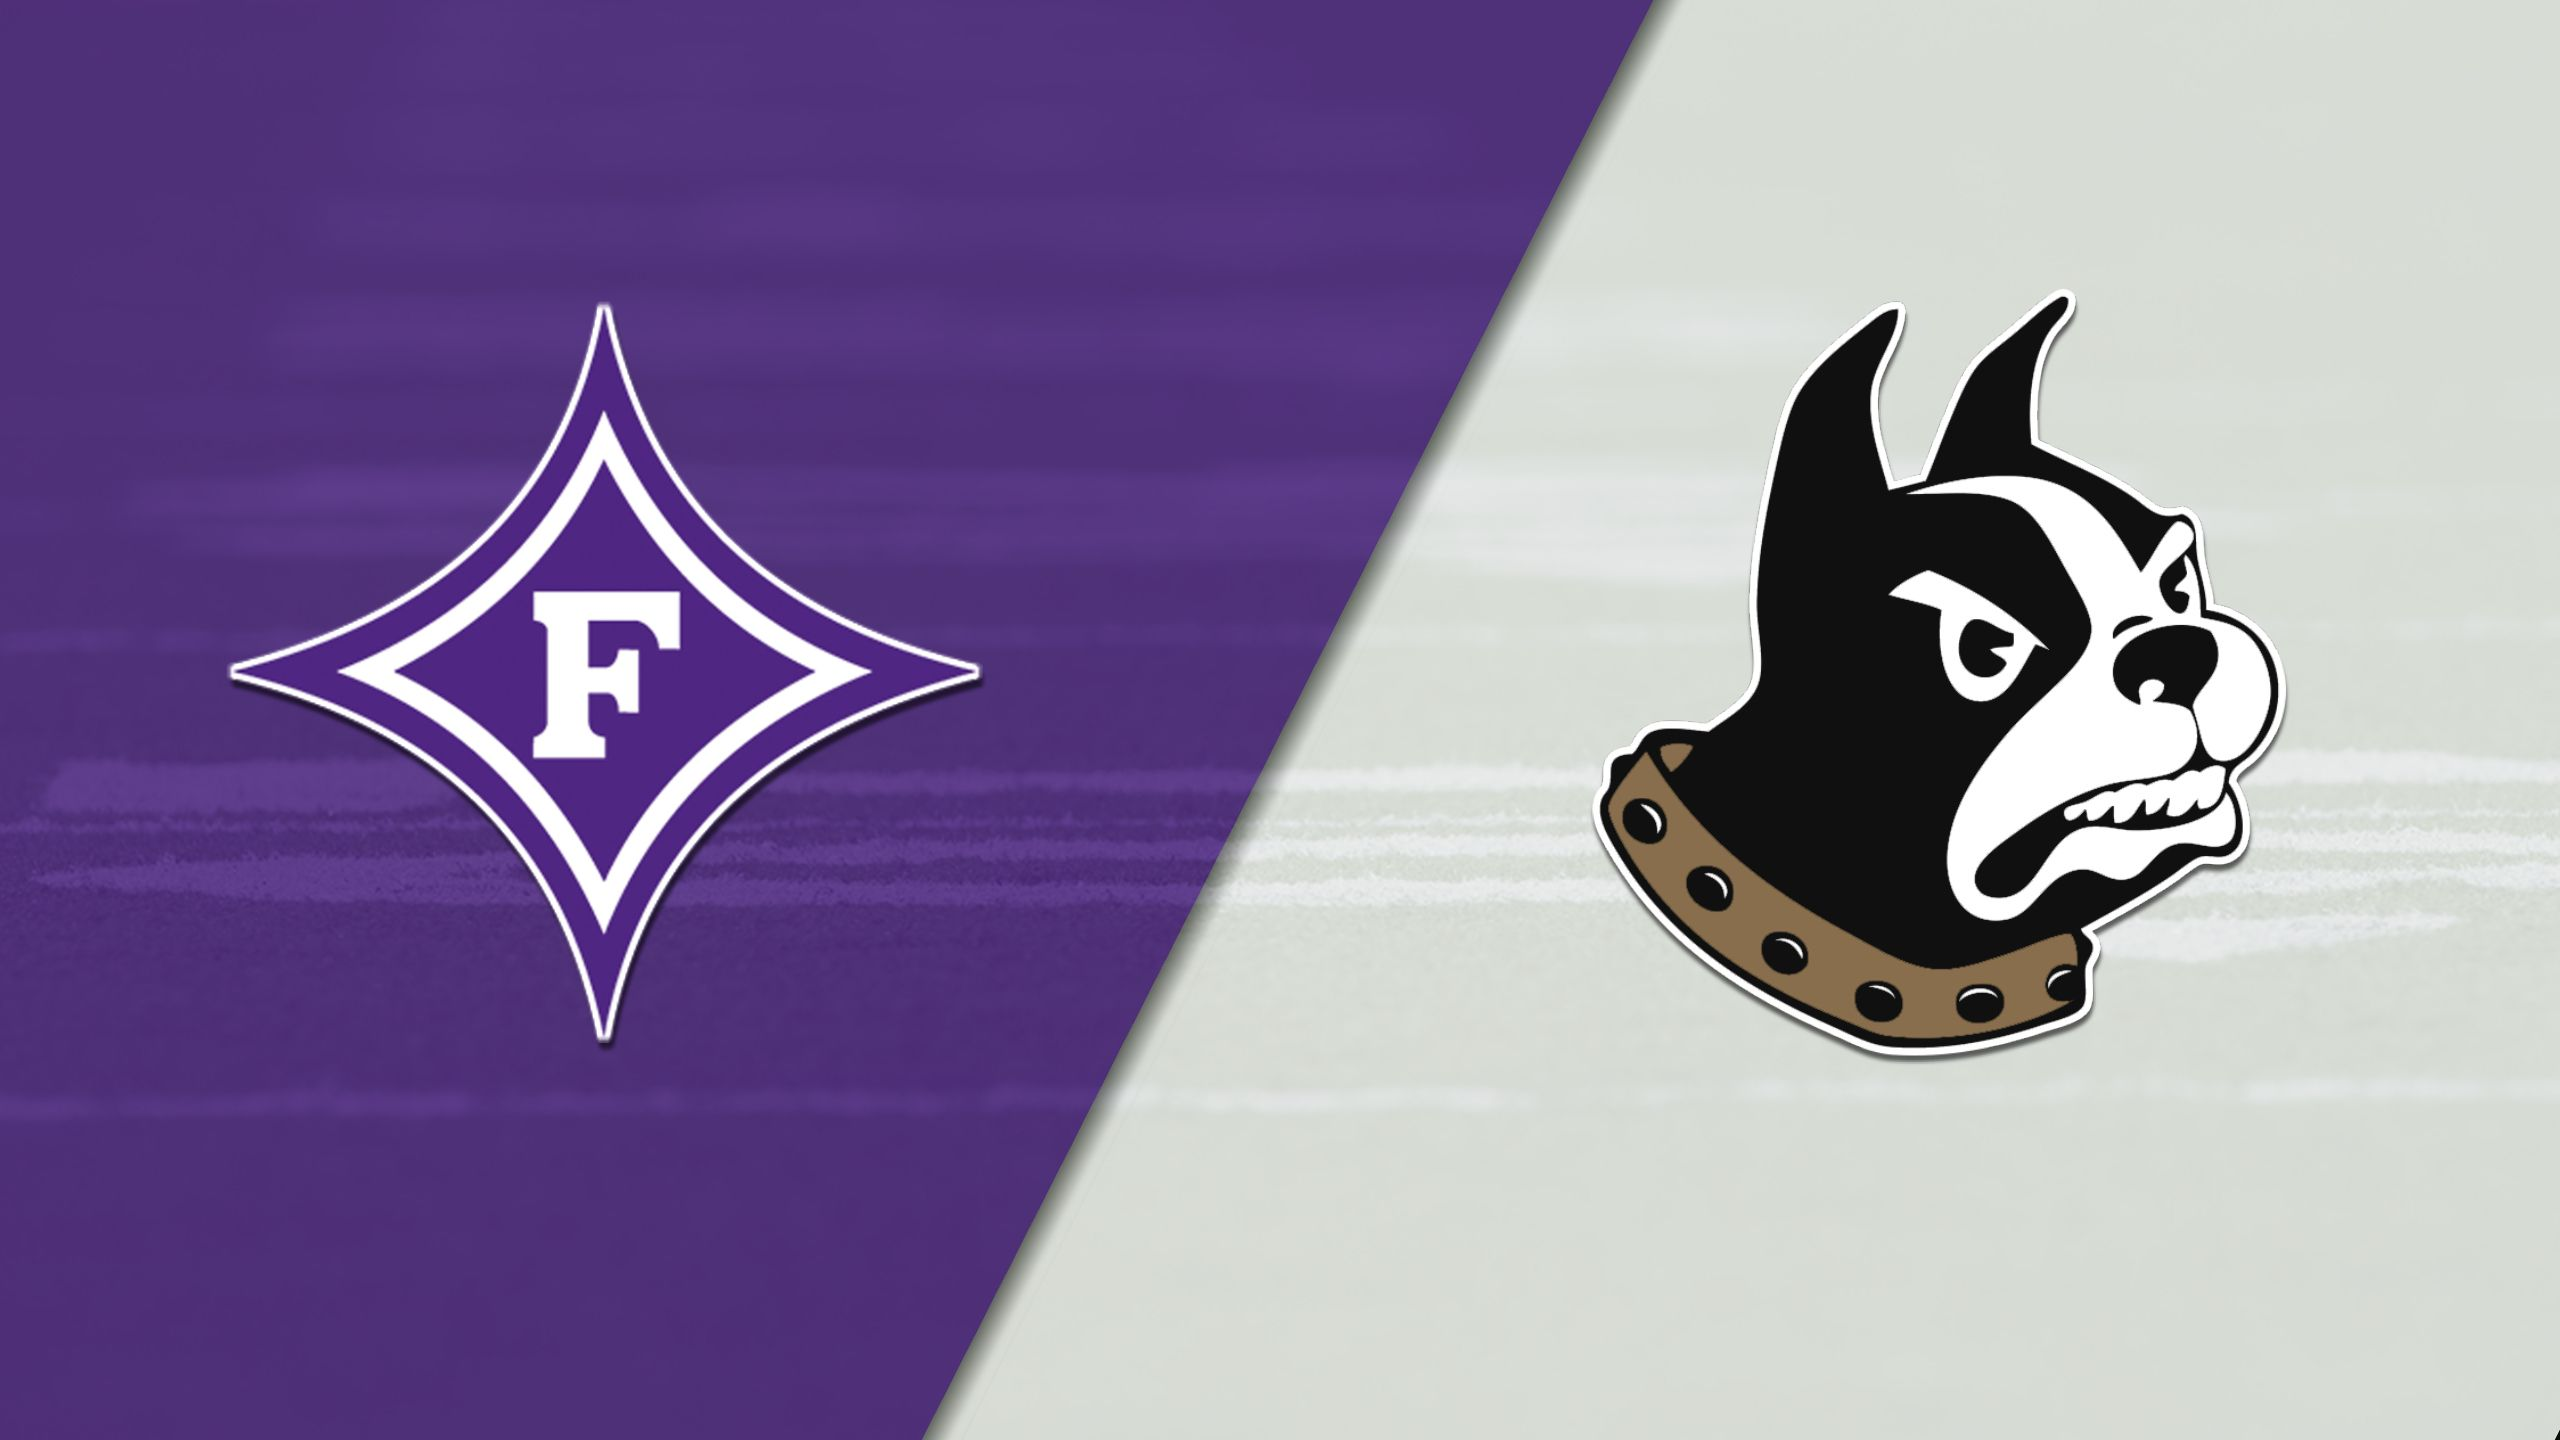 Furman vs. Wofford (Second Round) (NCAA Division I FCS Football Championship)